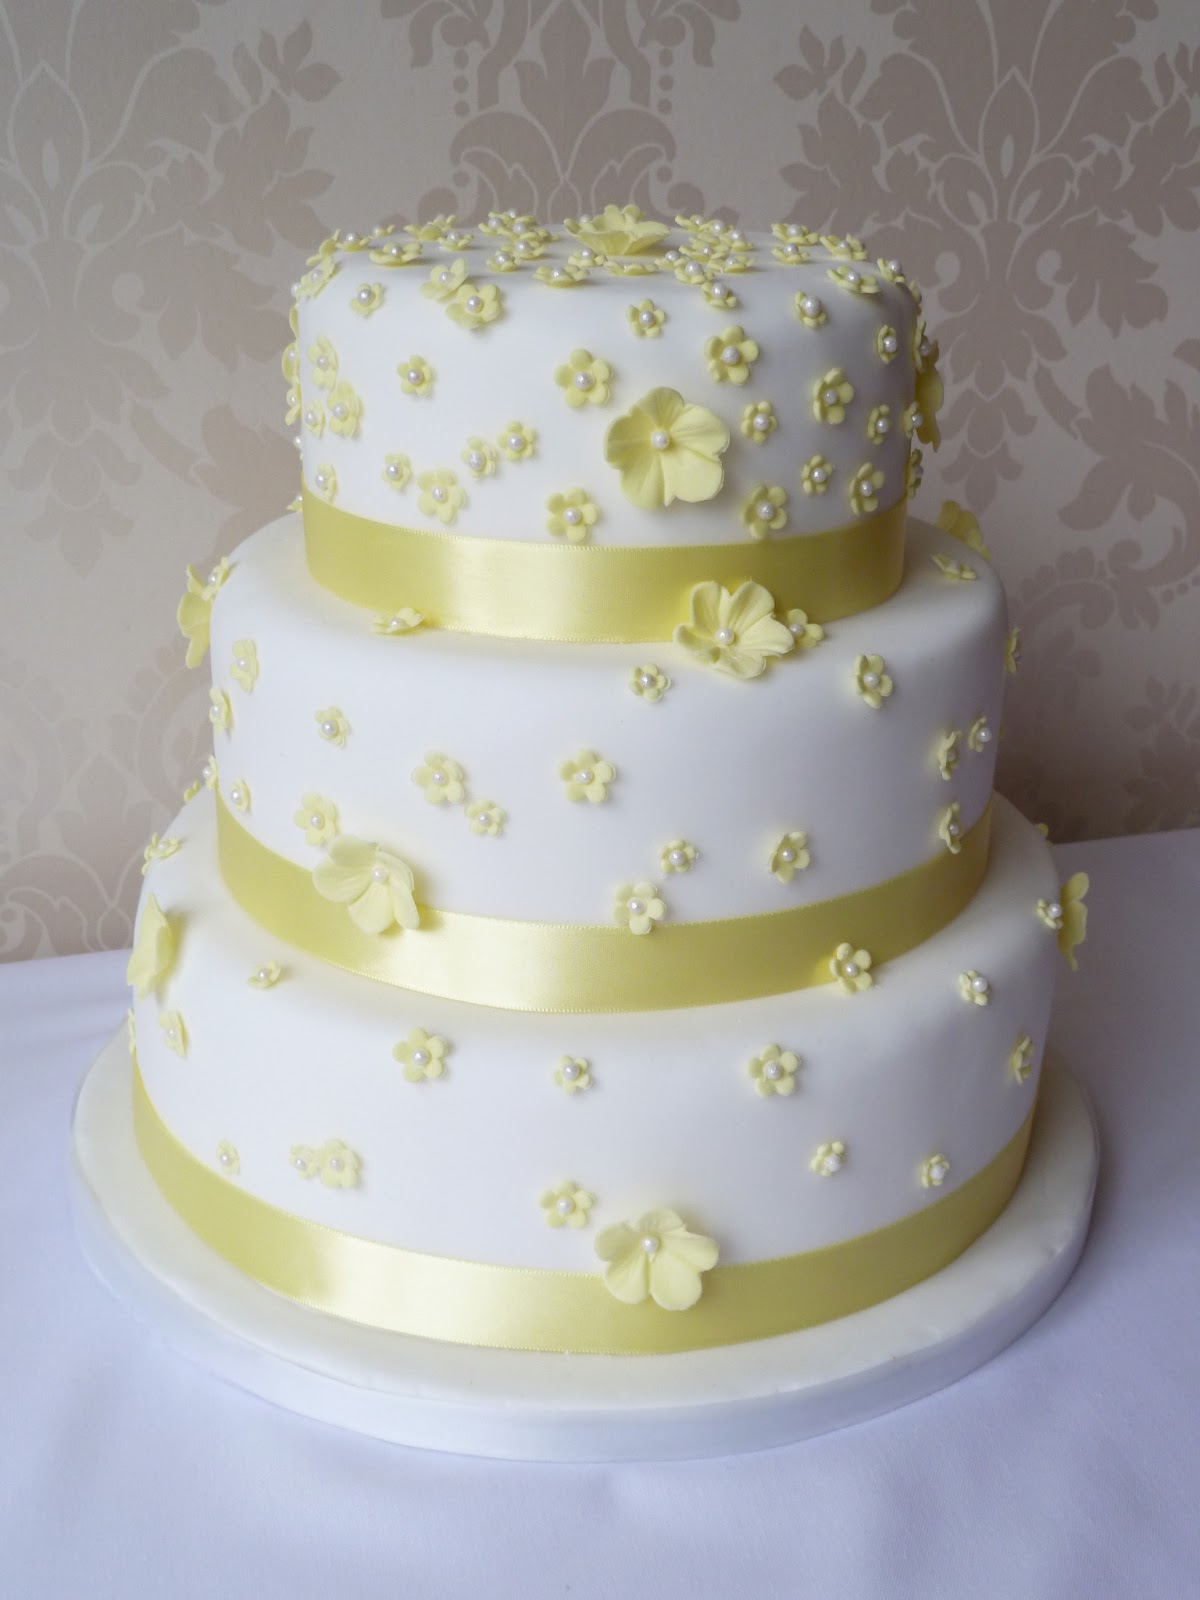 Kiss Me Cake Bakery: Weddings